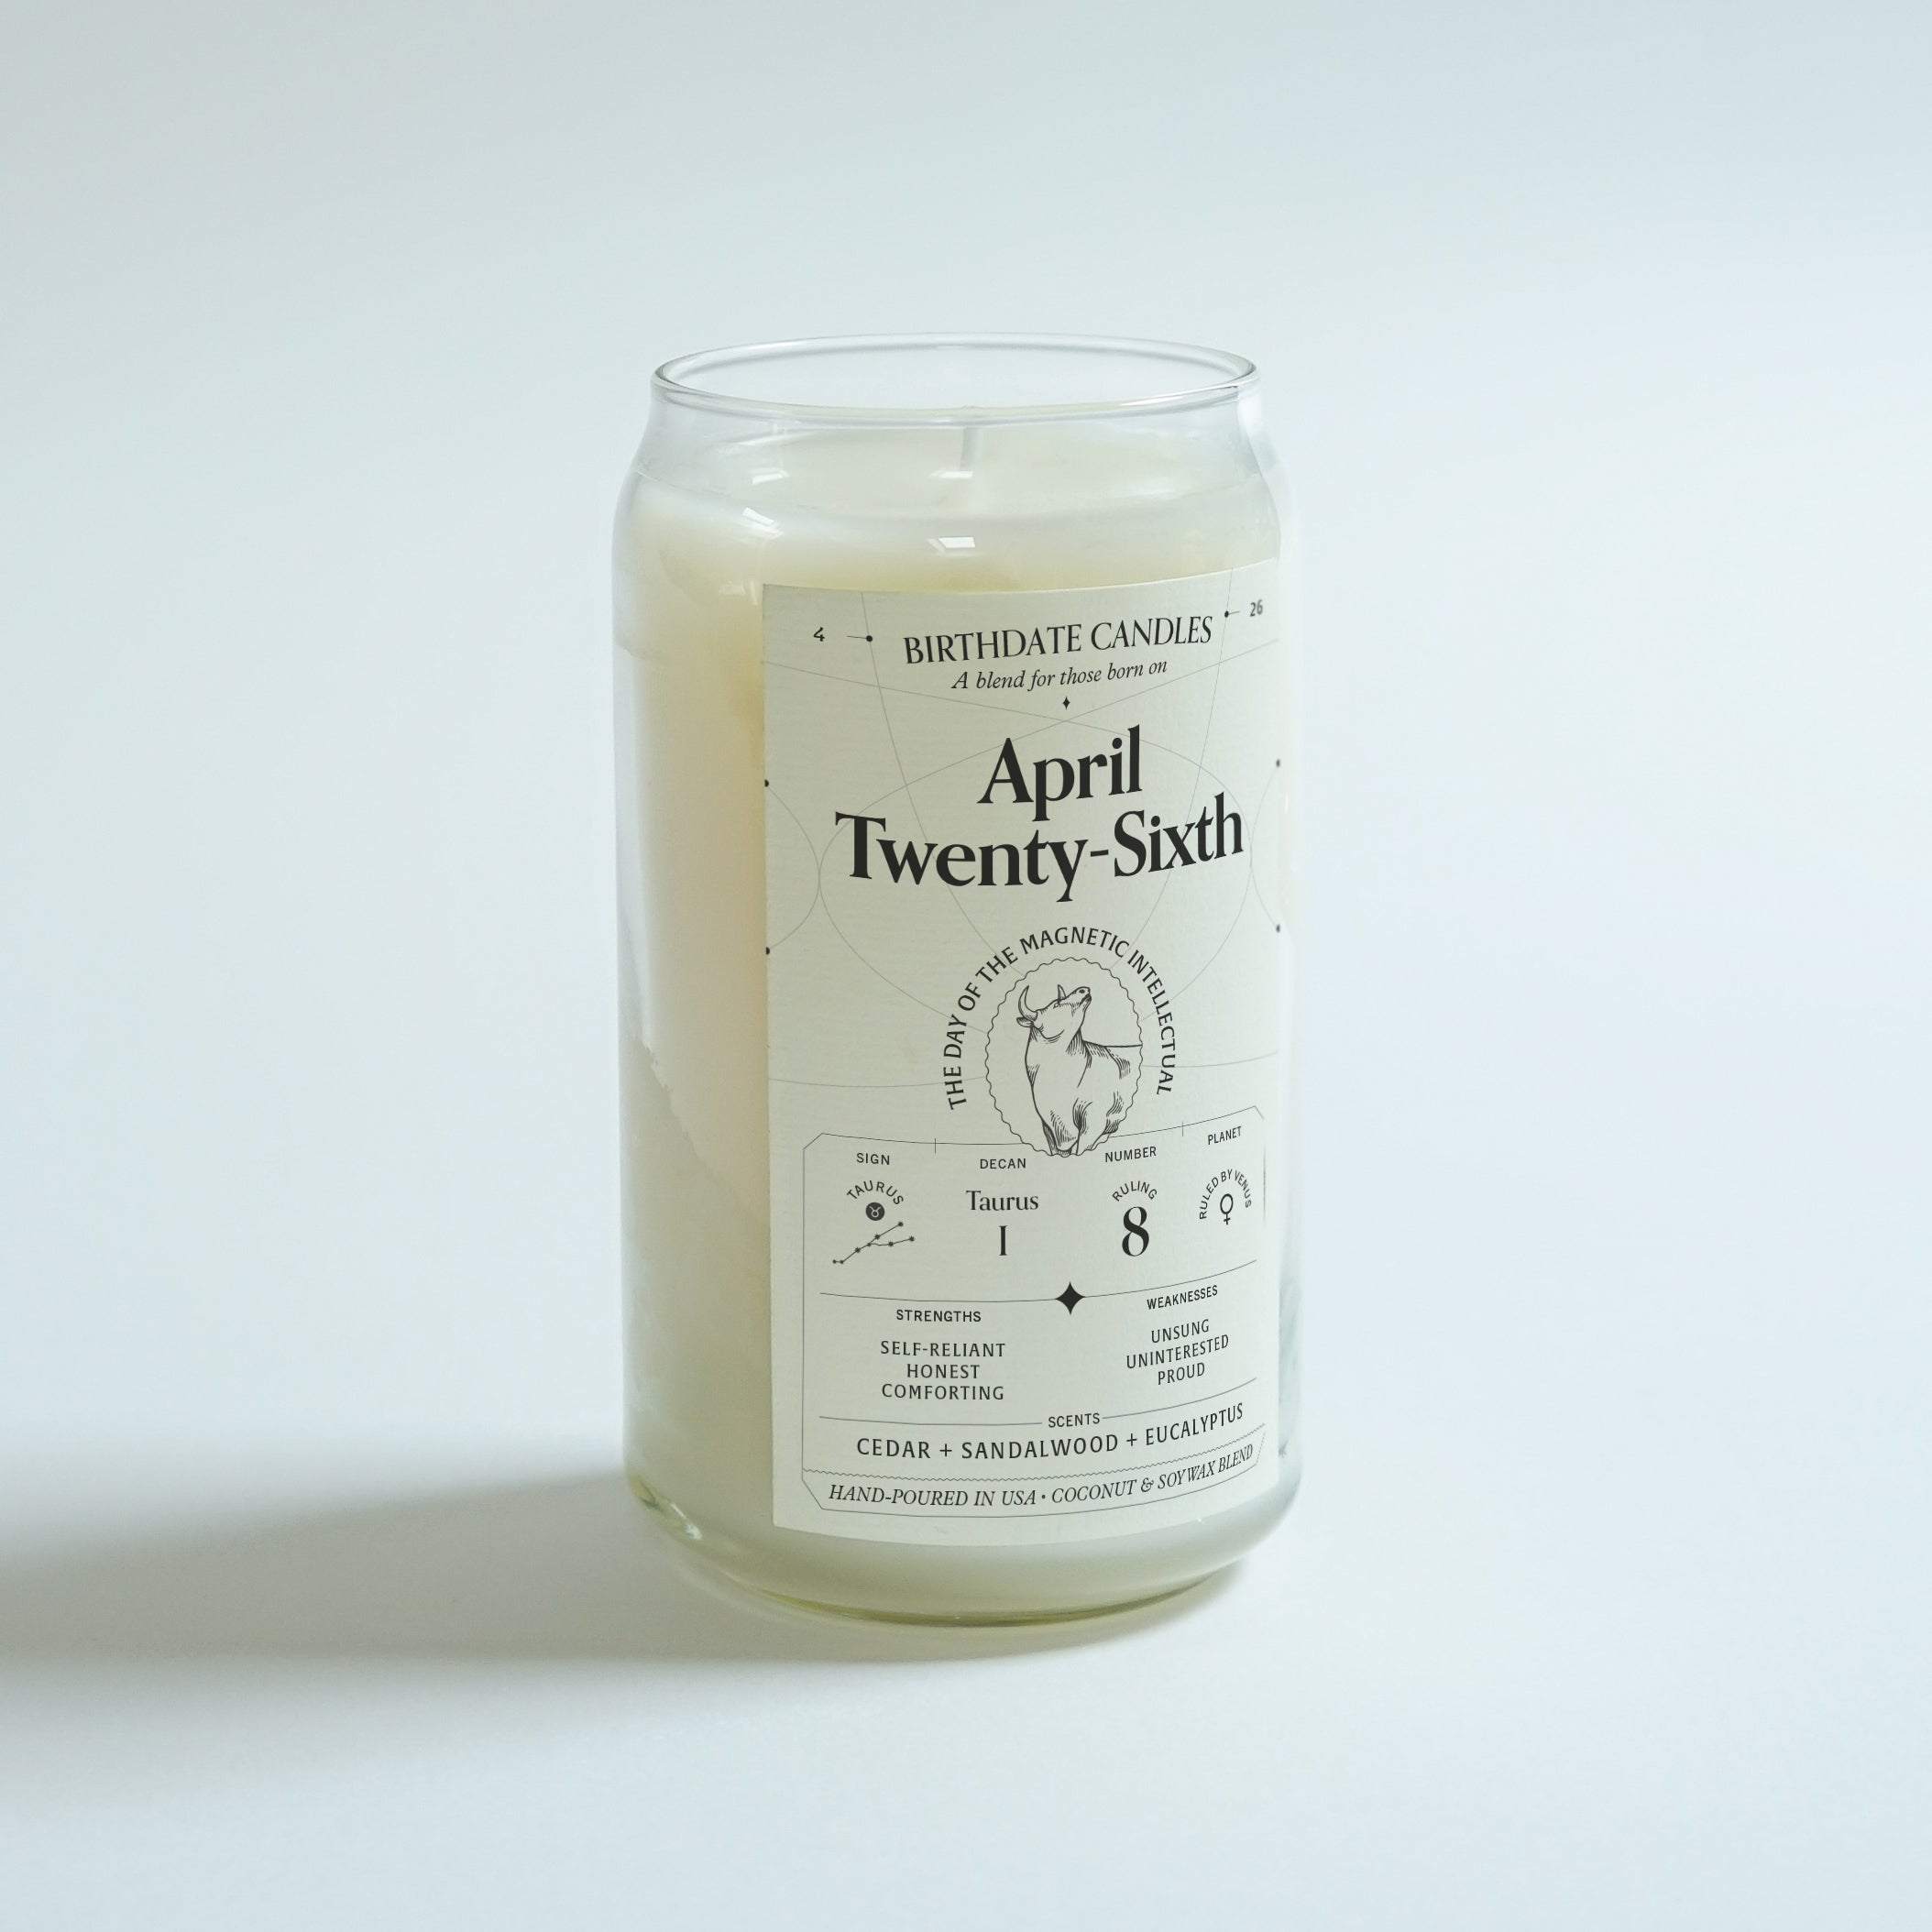 The April Twenty-Sixth Candle